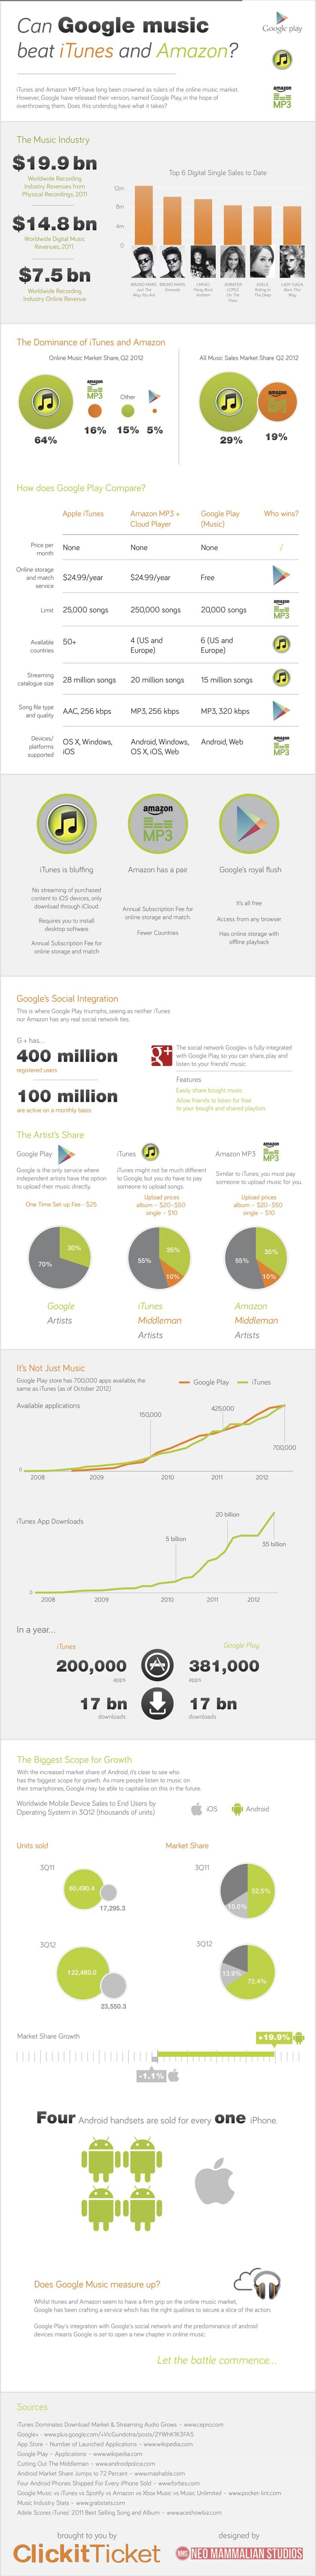 Cloud Infographic: Stacking Up Google Music Vs iTunes and Amazon: Daily Infographic, Free Itune, Amazons Infographic, Menu, Info Graphics, Googleplay, Plays Beats, Google Plays, Cans Google Music Beats Itunes